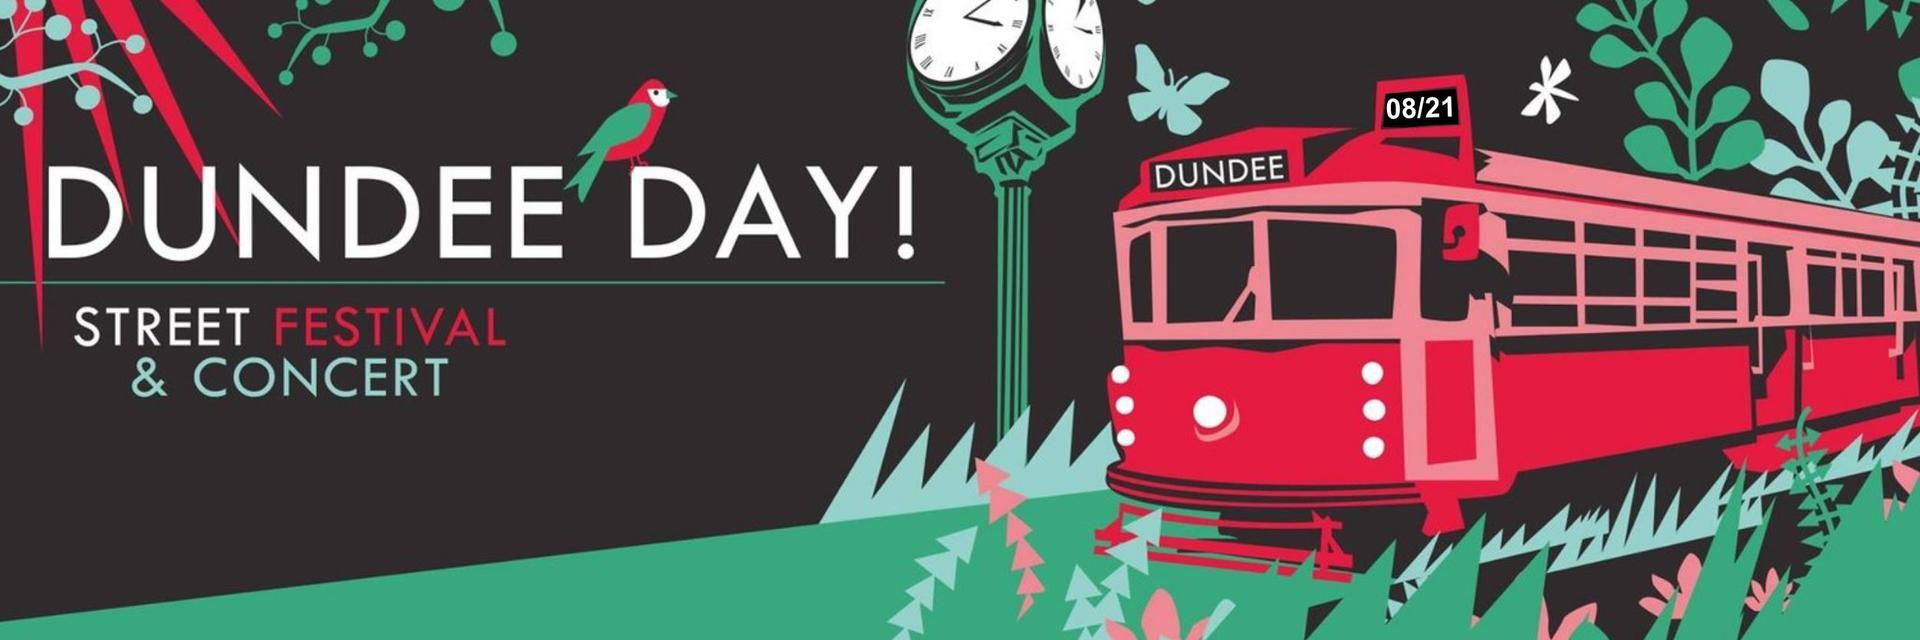 Dundee Day 28th Annual Summer Street Festival to be held August 21, 2021